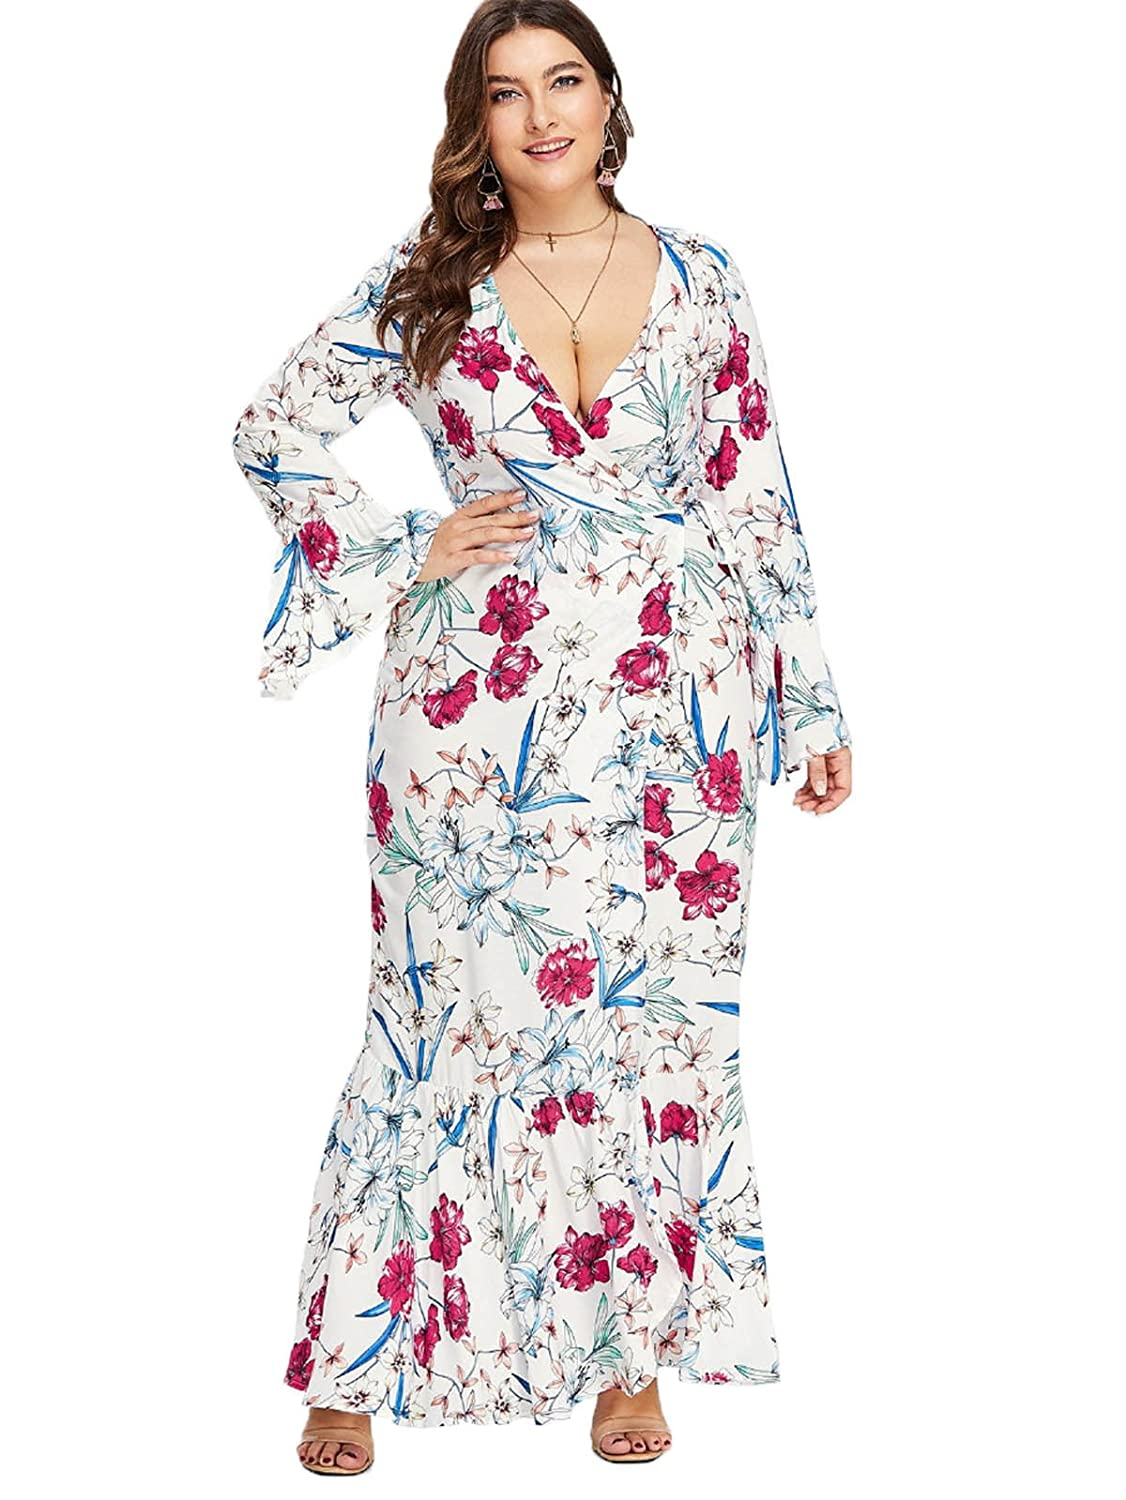 b4336c6f11 Floerns Women s Plus Size V Neck Long Sleeve Belted Floral Maxi Wrap Dress  White 3XL at Amazon Women s Clothing store